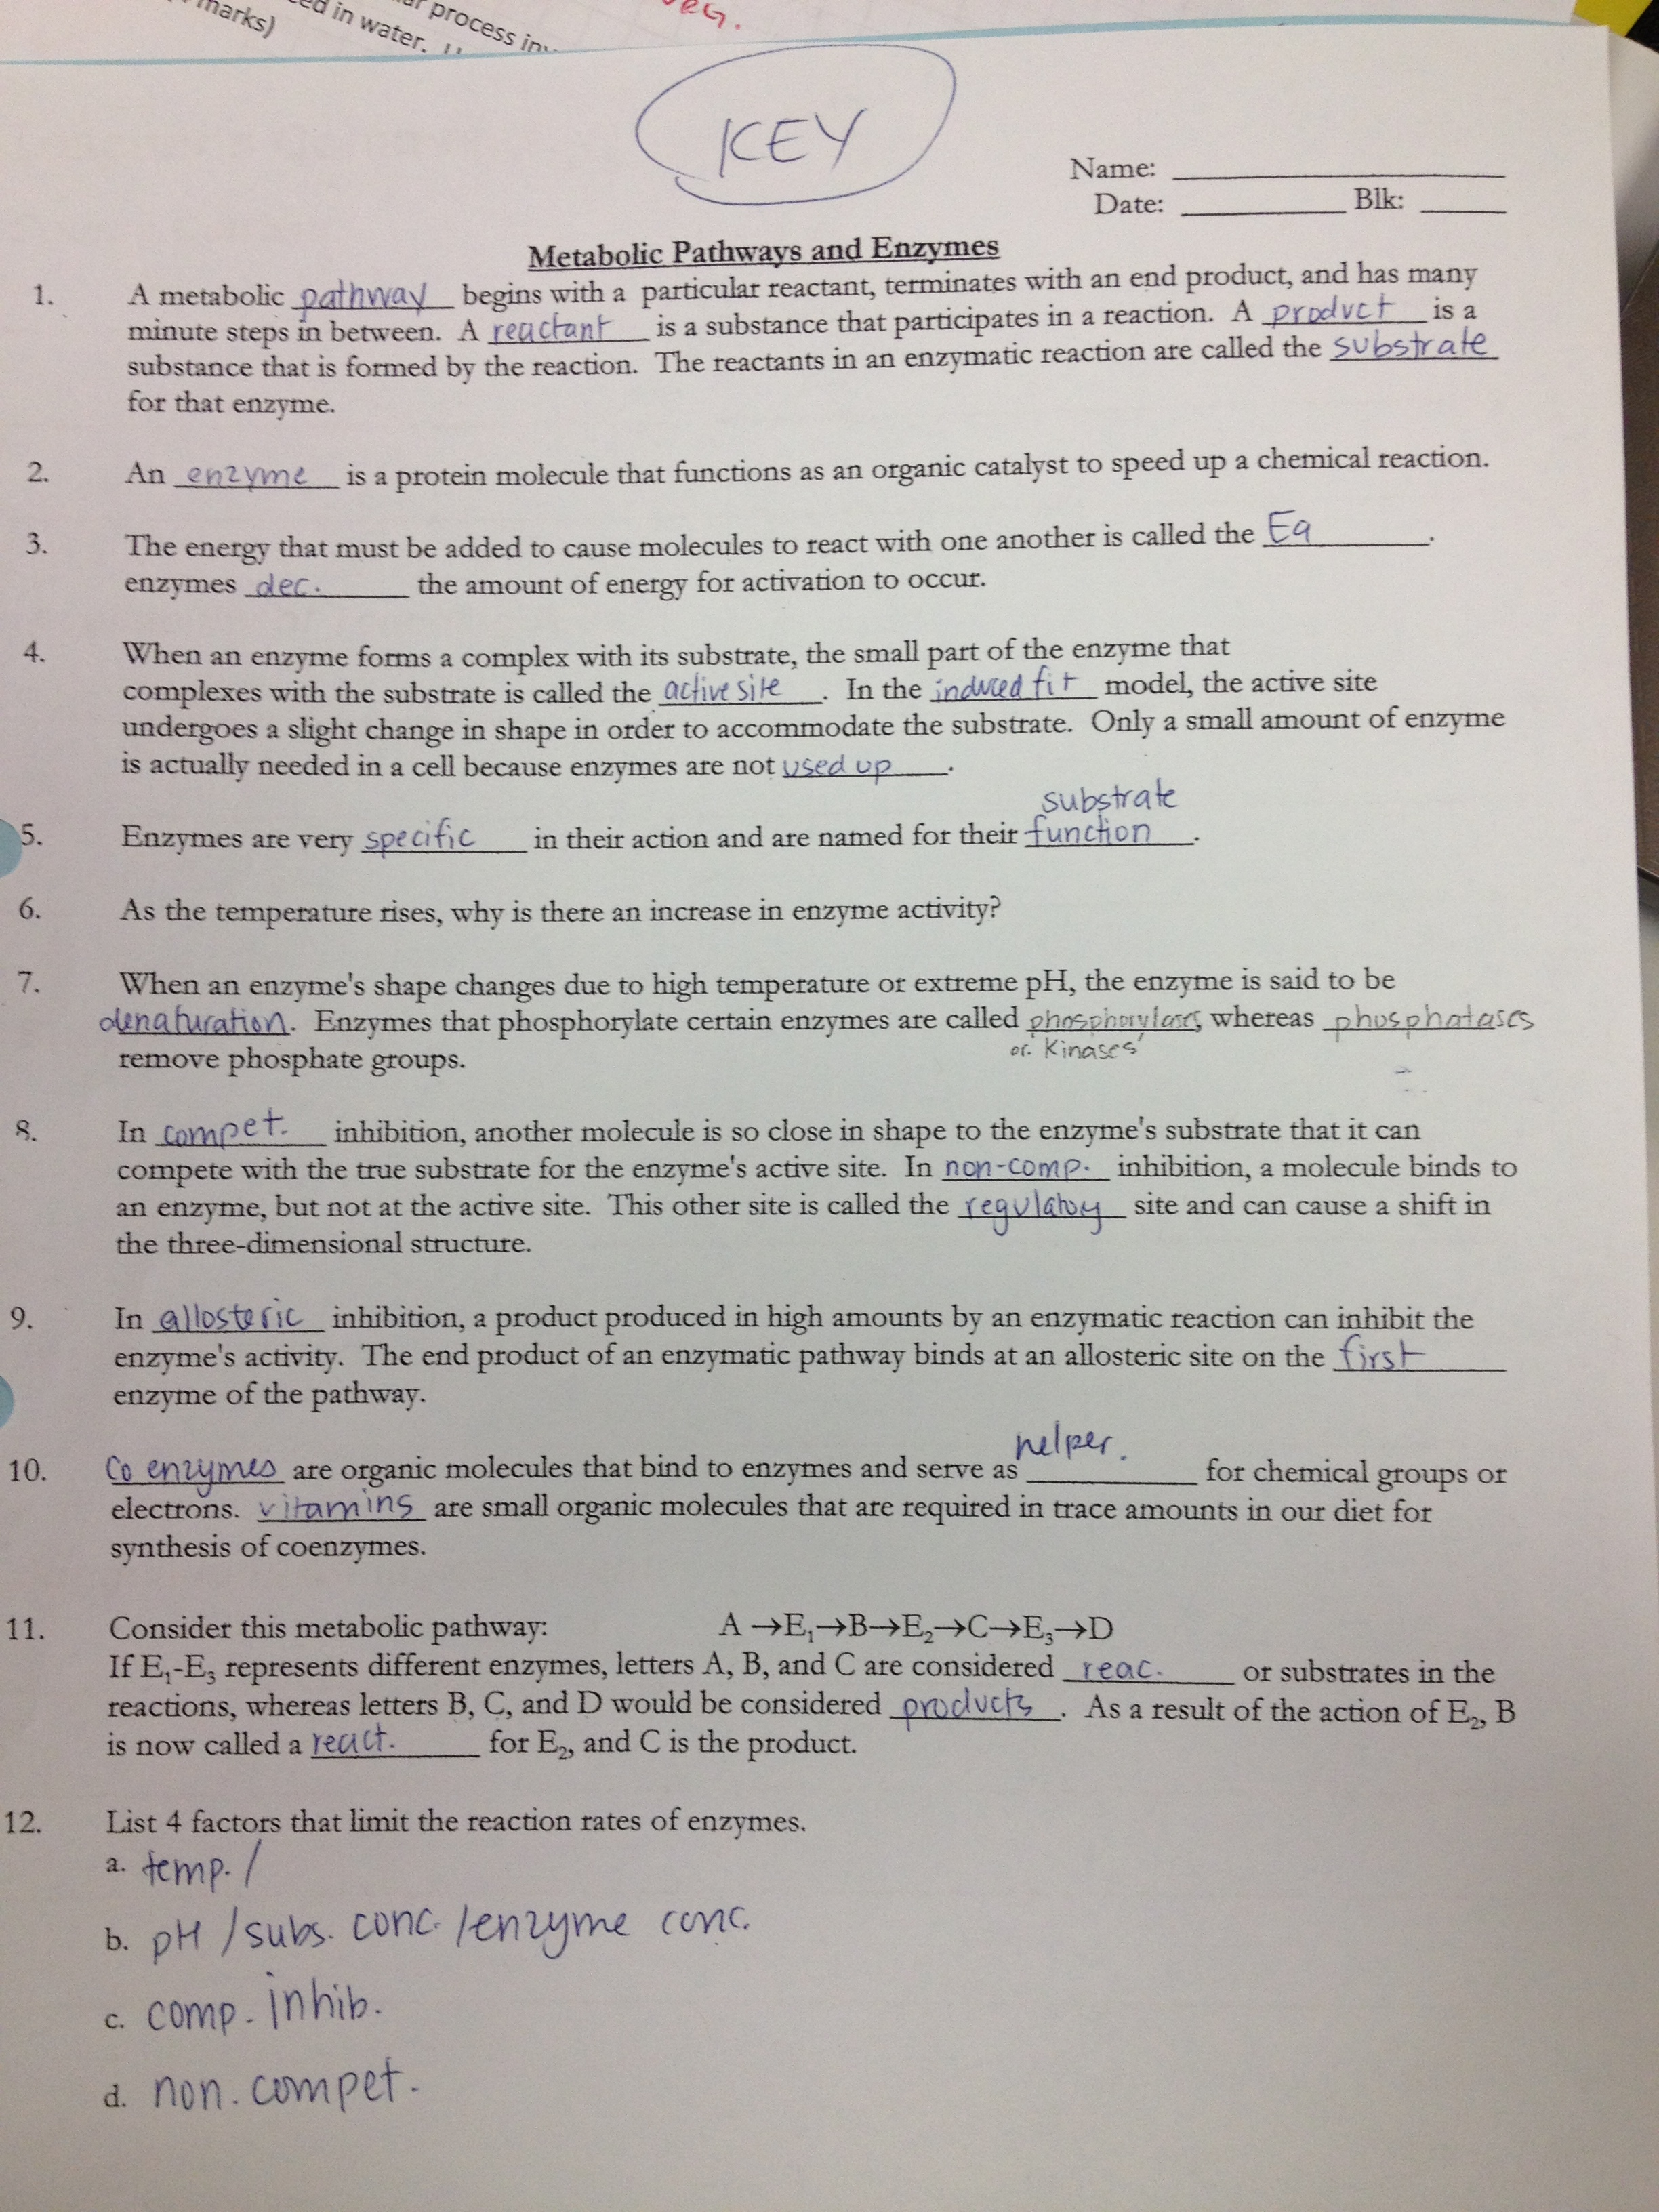 Enzyme Worksheet Answers   Ms  Ghtaura s Class Enzyme Worksheet Answers